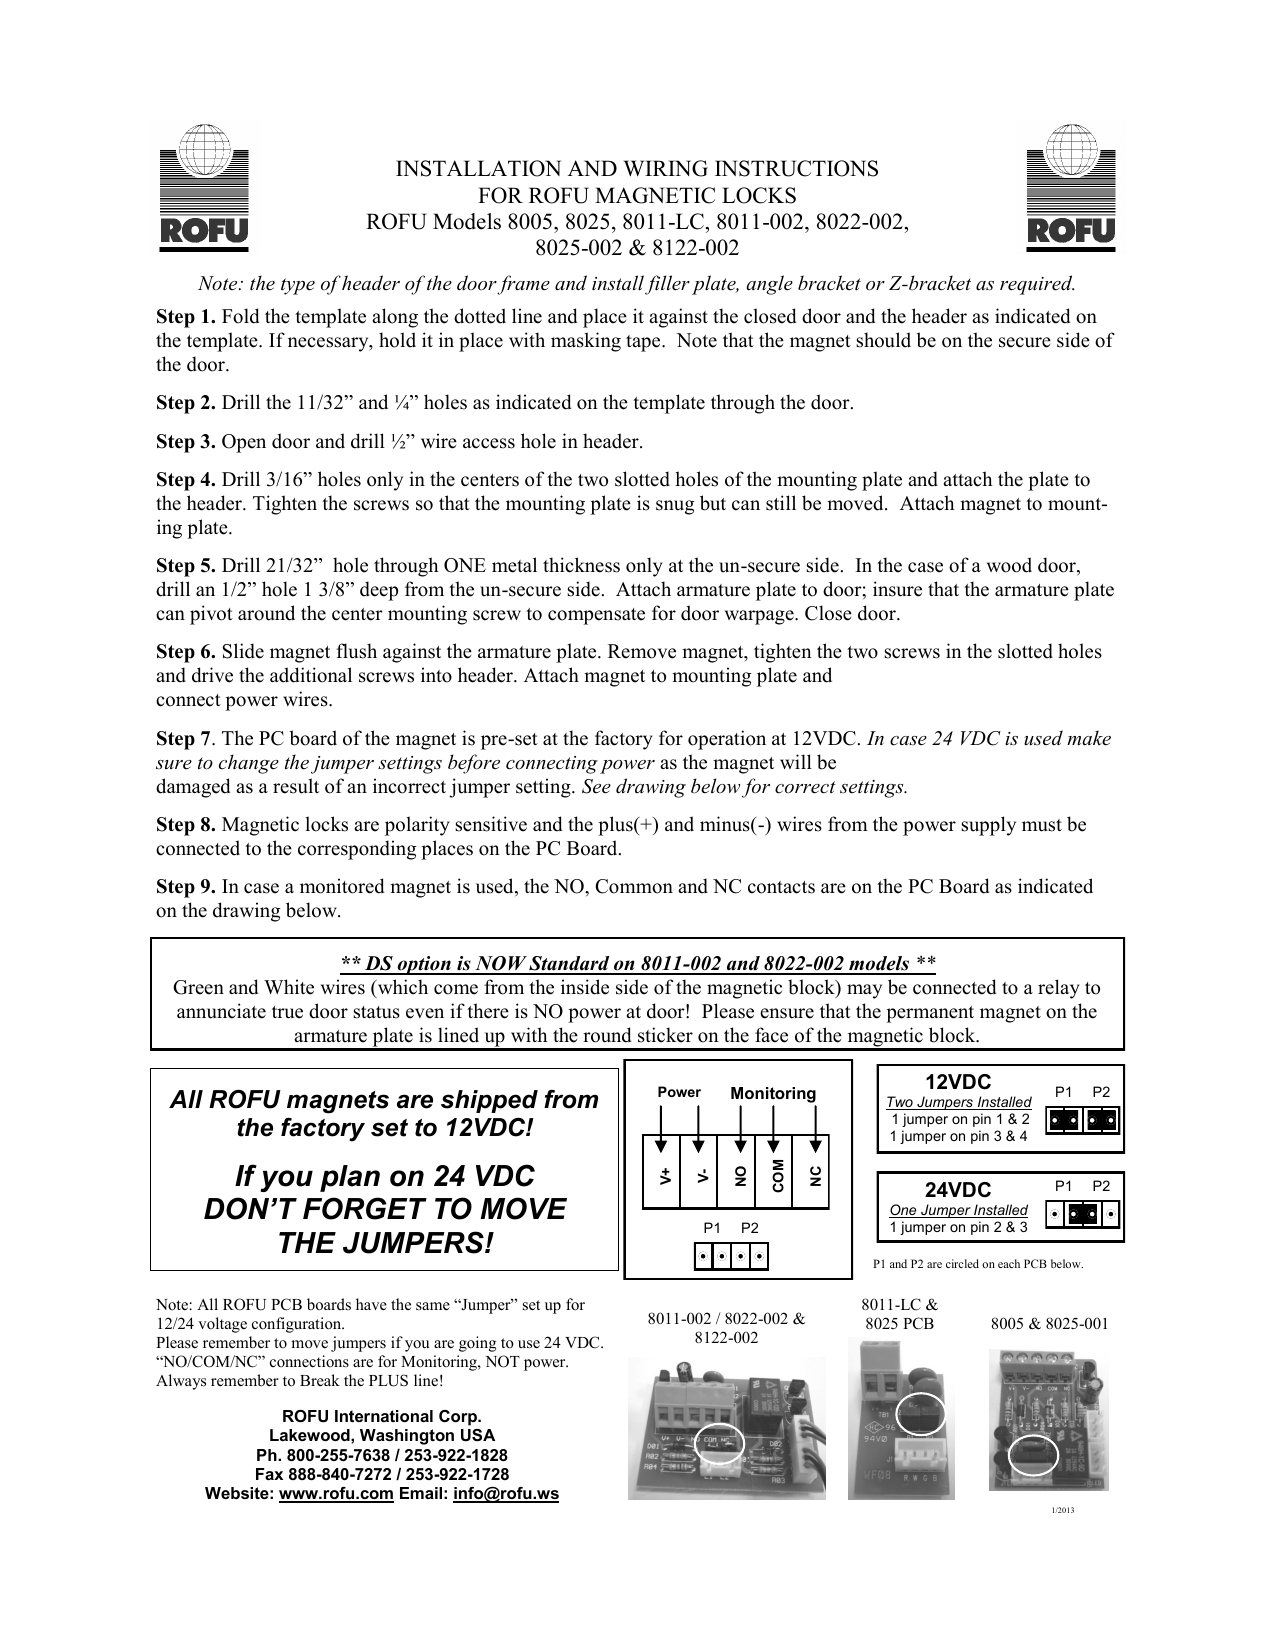 hight resolution of rofu 8011 wiring diagram manualzz com ds series magnetic lock wiring instructions